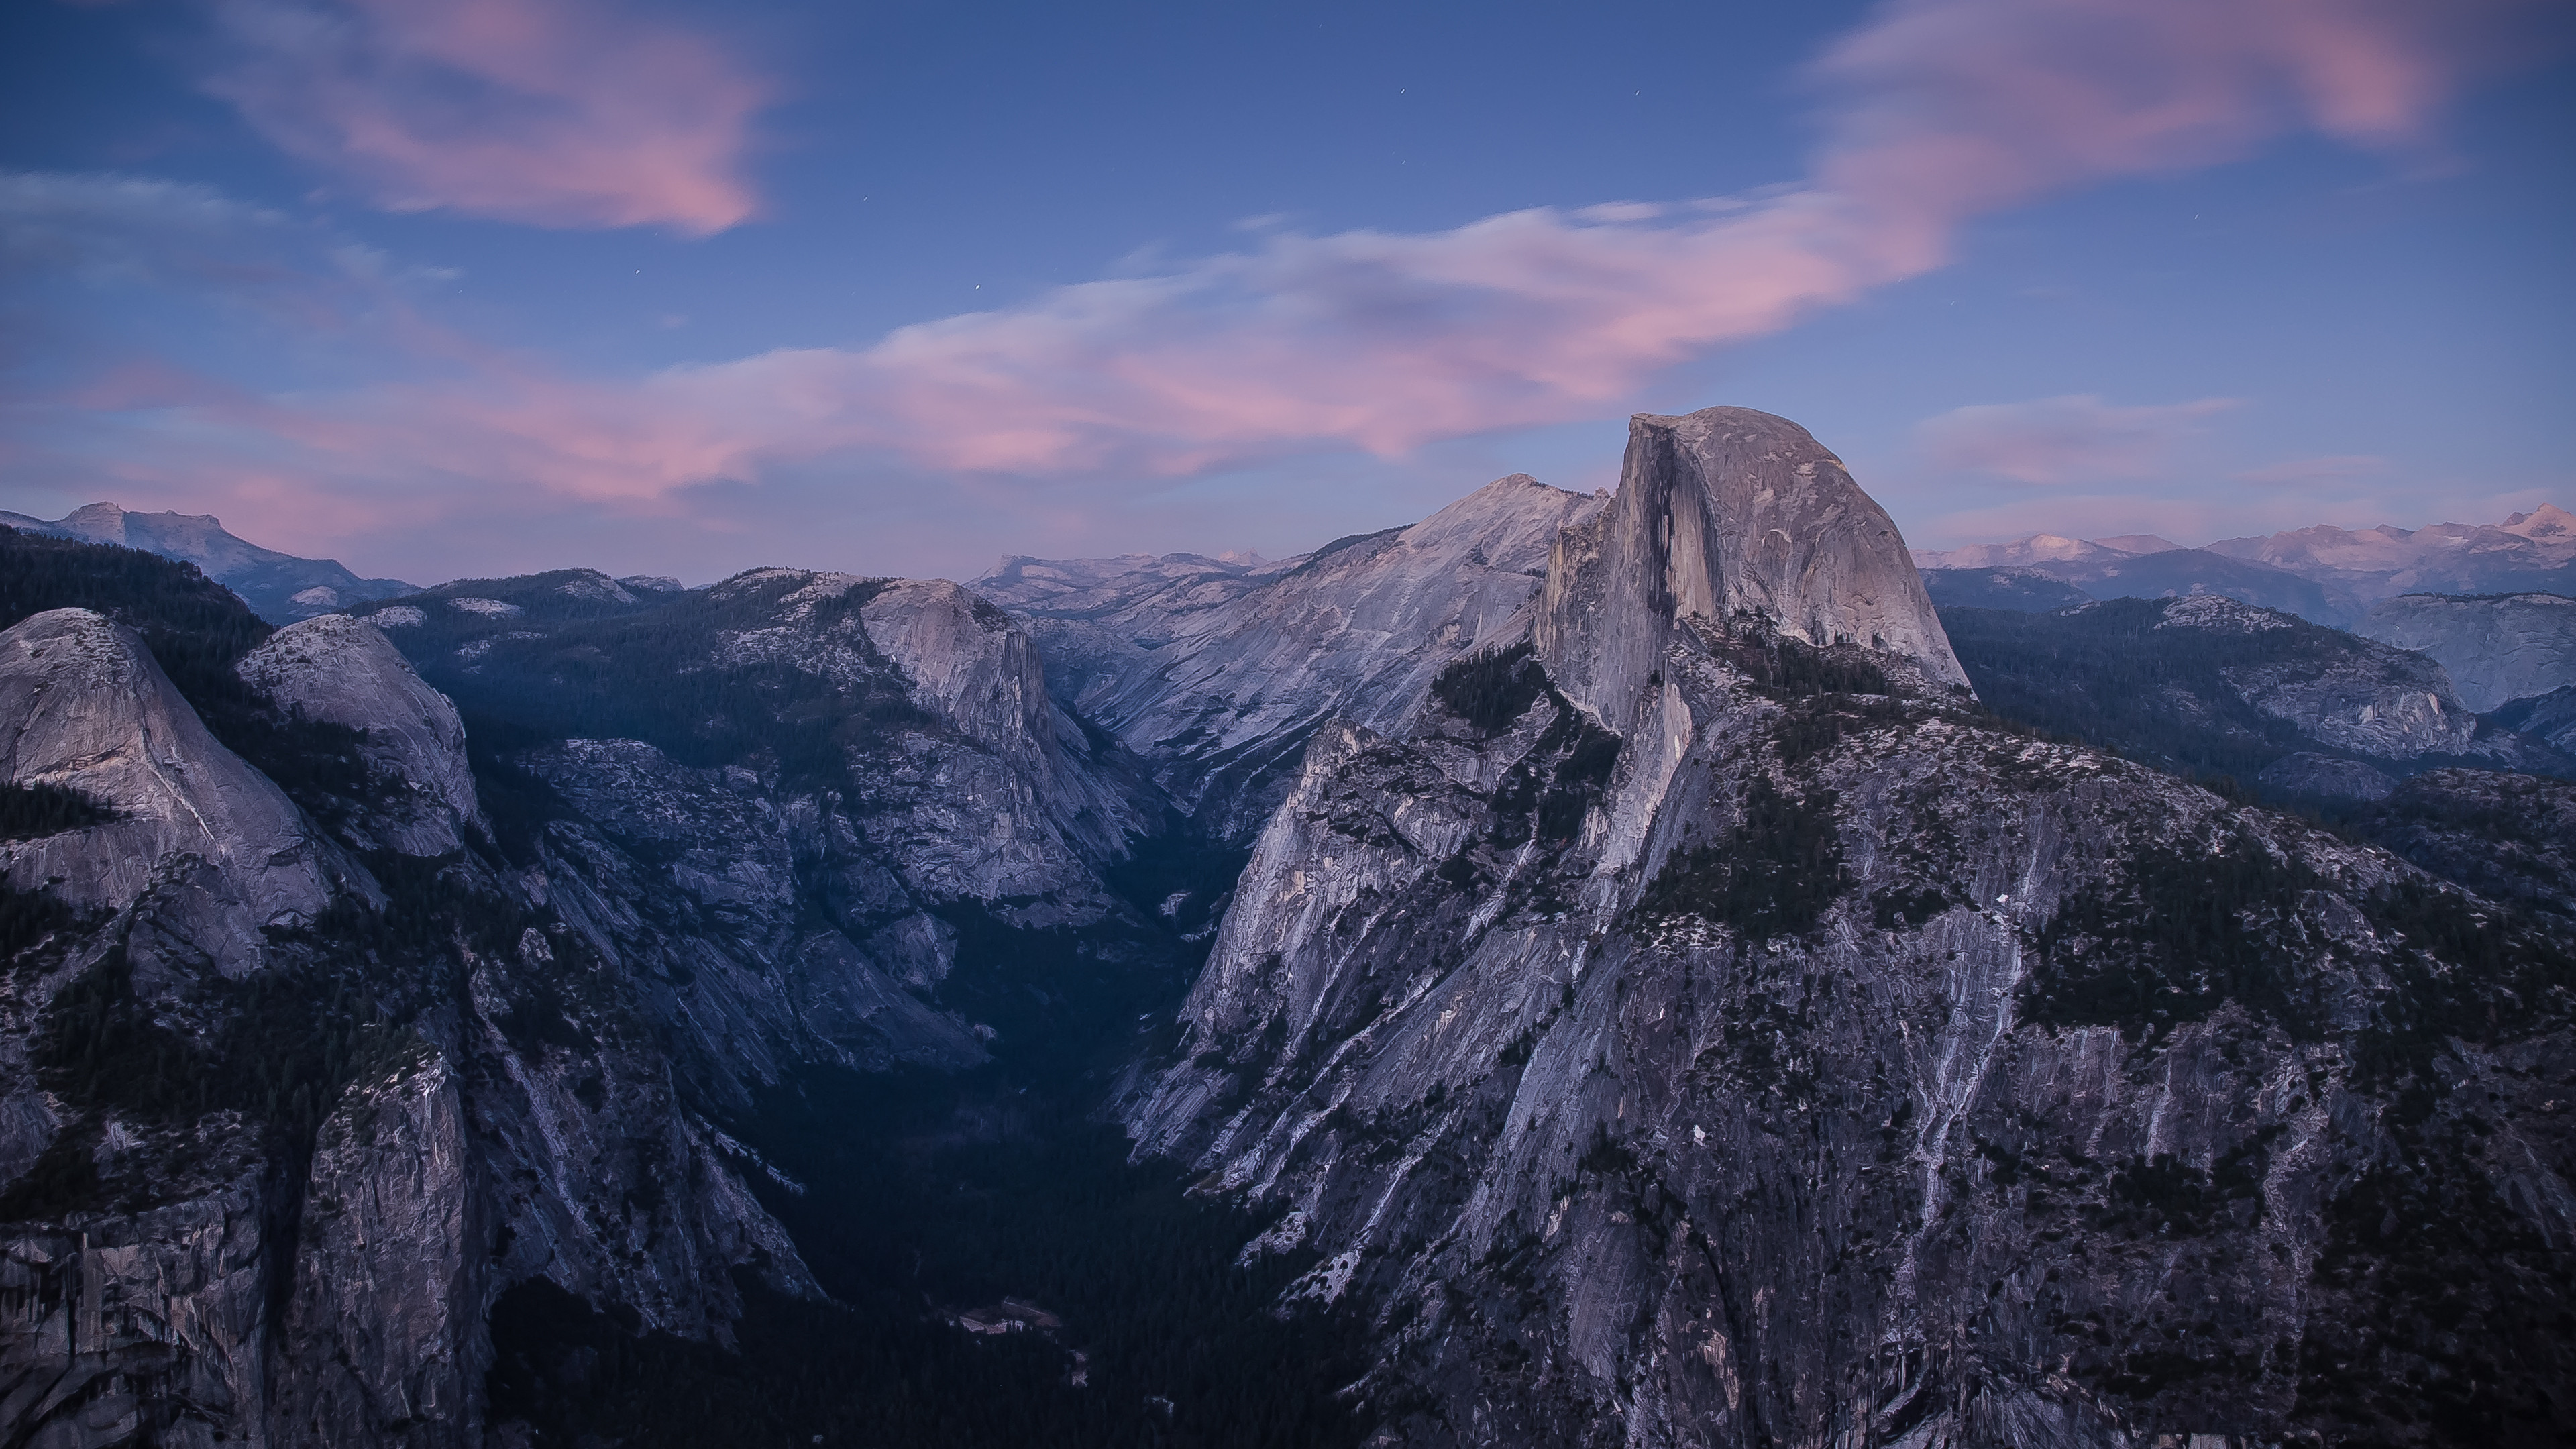 3840x2160 Mac Os X 4k Wallpaper Fresh 4k Yosemite Wallpaper Wallpapersafari